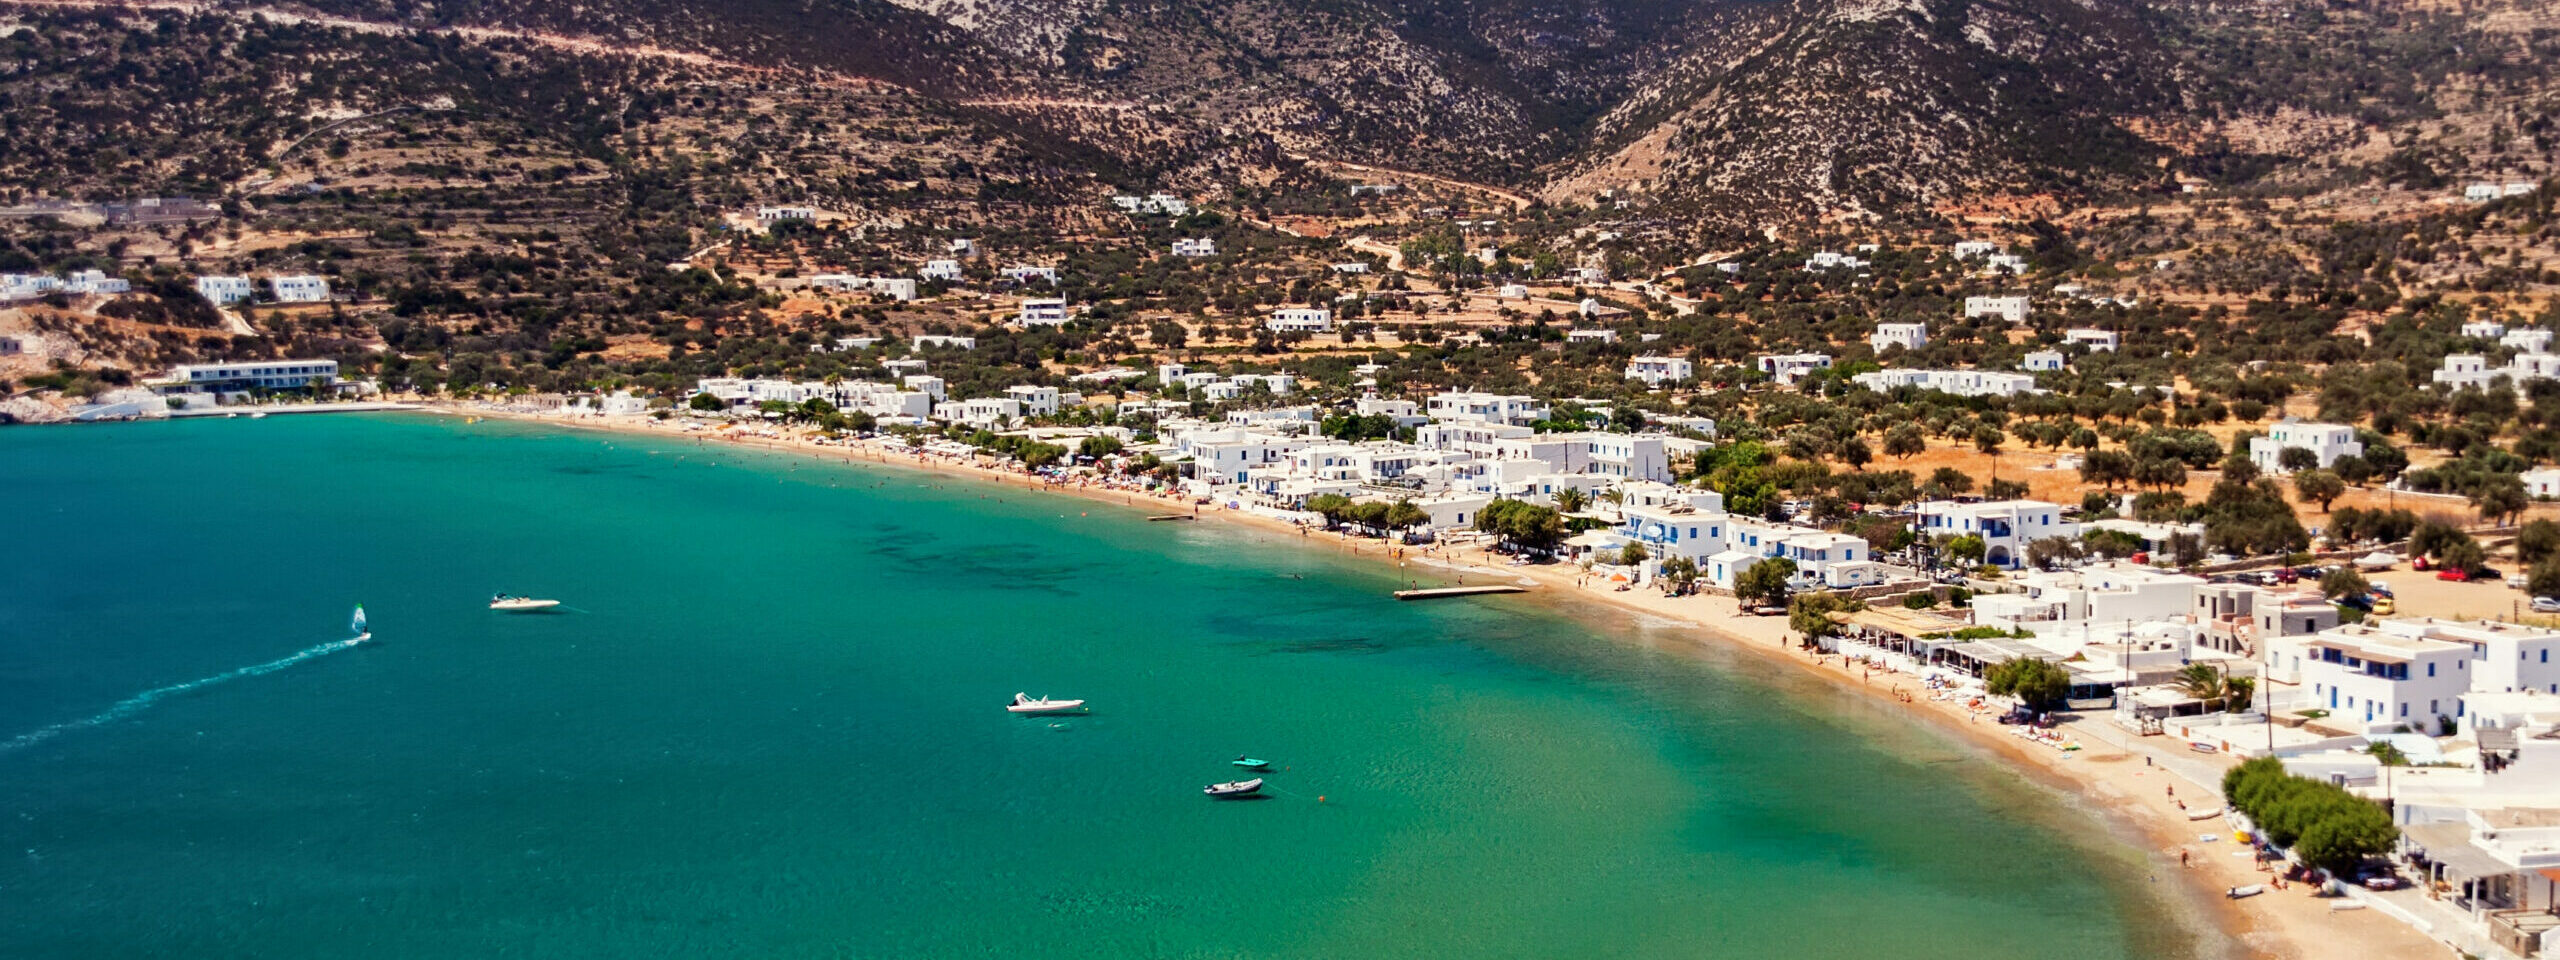 Five great reasons for a holiday on Sifnos